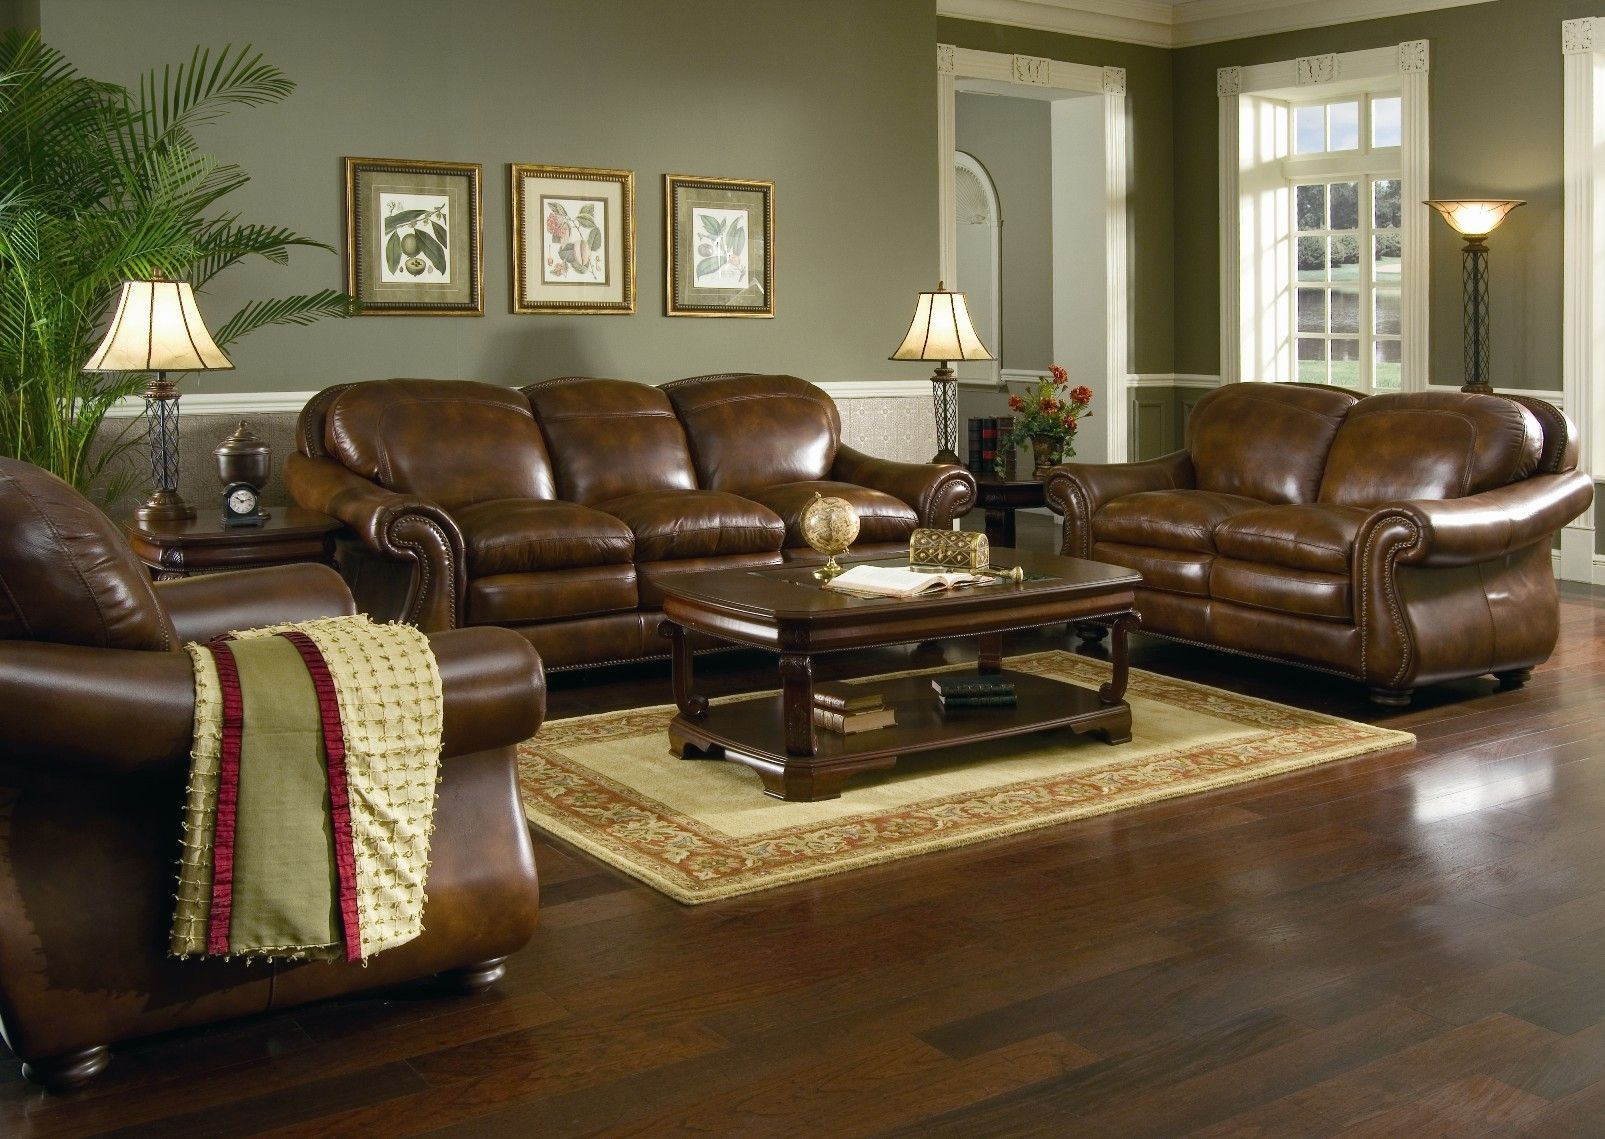 Luxurious Classic Living Room Ideas With Brown Leather Couch And